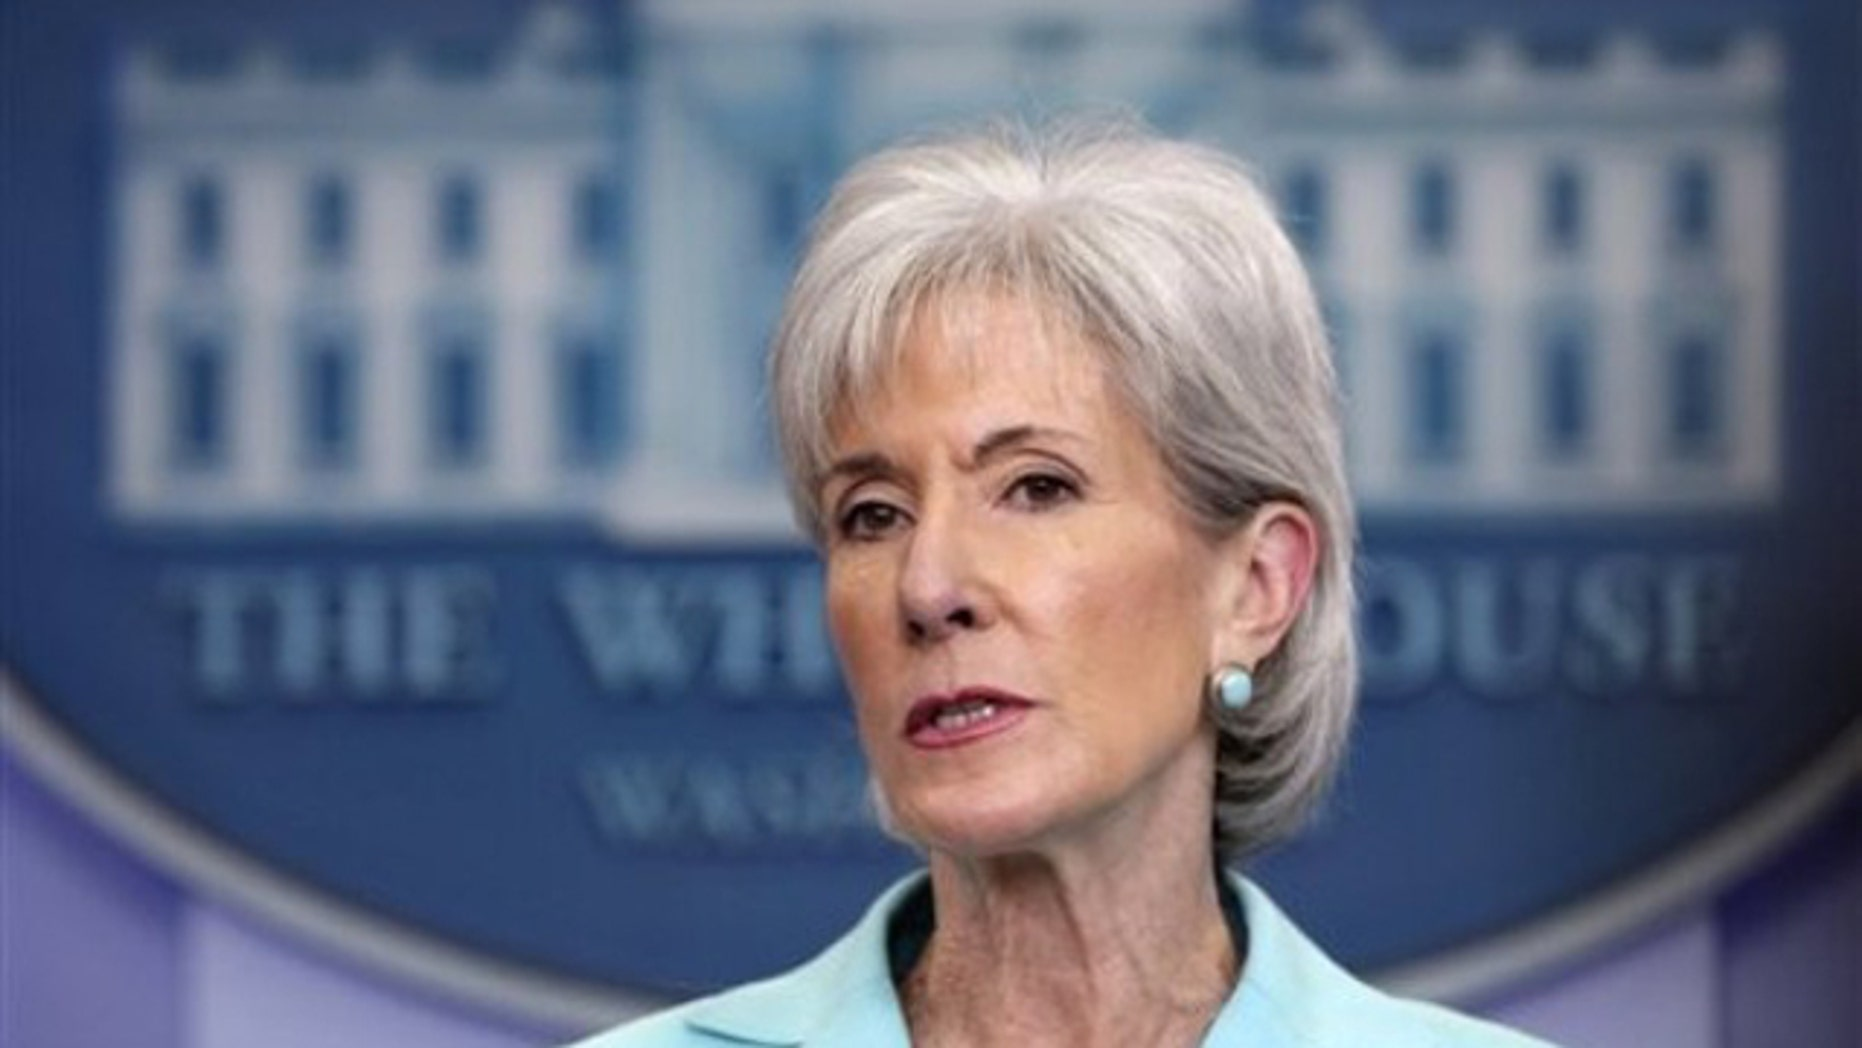 Health and Human Services Secretary Kathleen Sebelius speaks during the daily news briefing at the White House June 21.